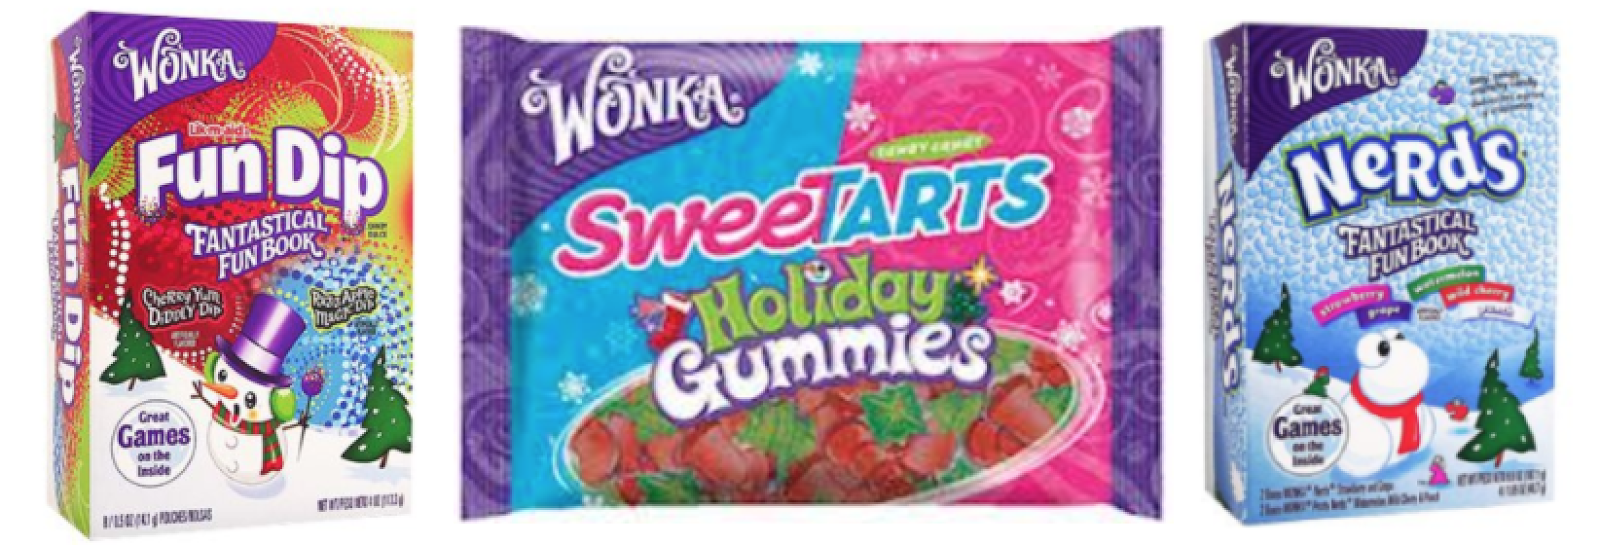 Canes coupon network 50 off wonka sweet tarts coupon network 1 off